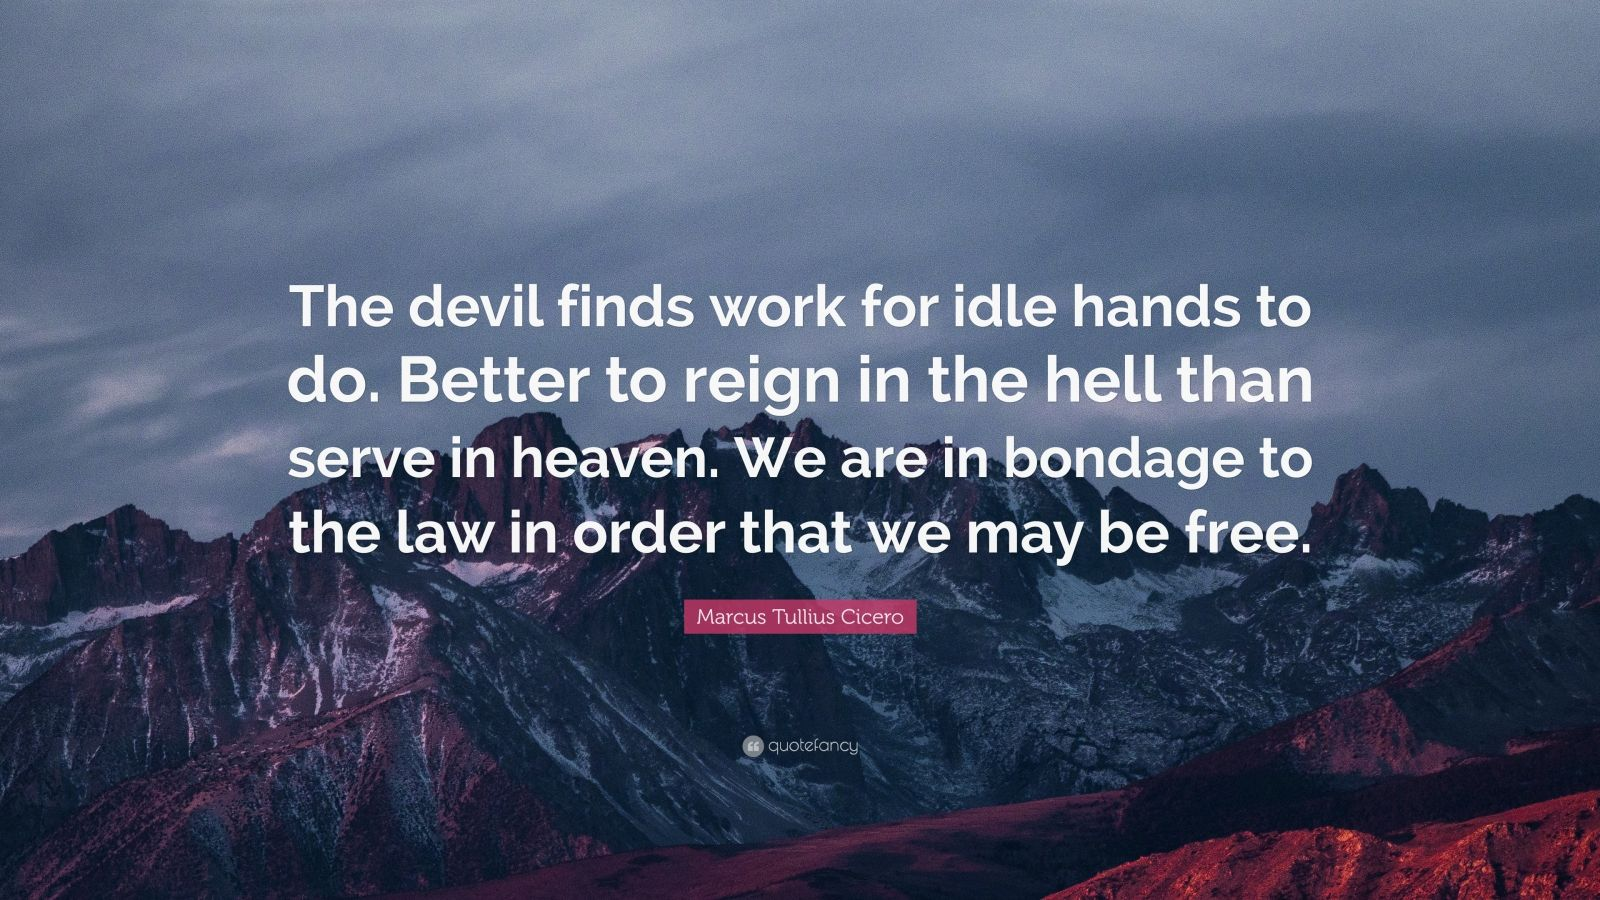 The devil finds work for idle hands